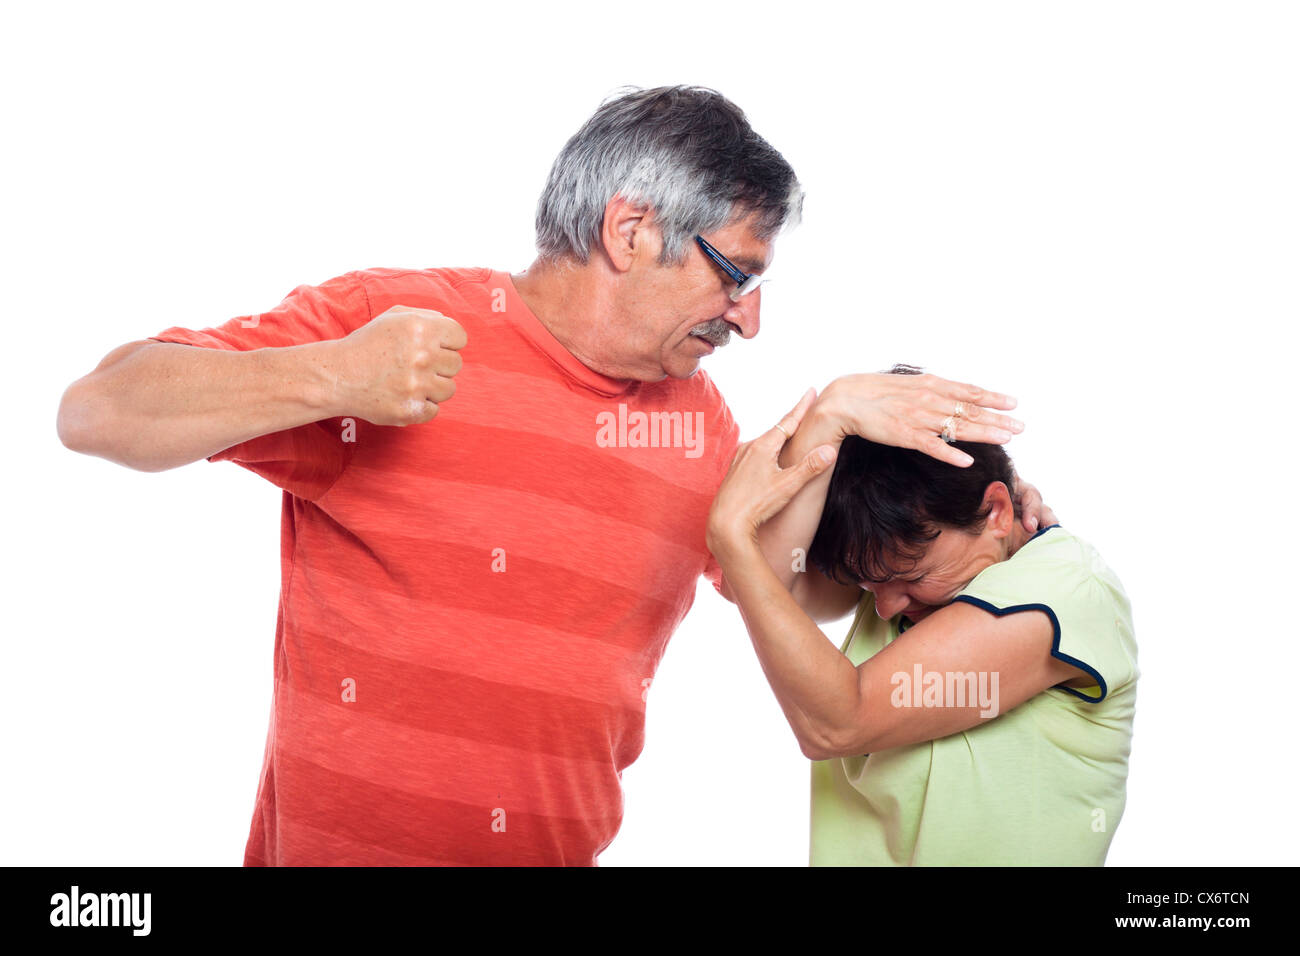 Domestic violence abuse concept, photo of aggressive man and unhappy woman, isolated on white background. - Stock Image